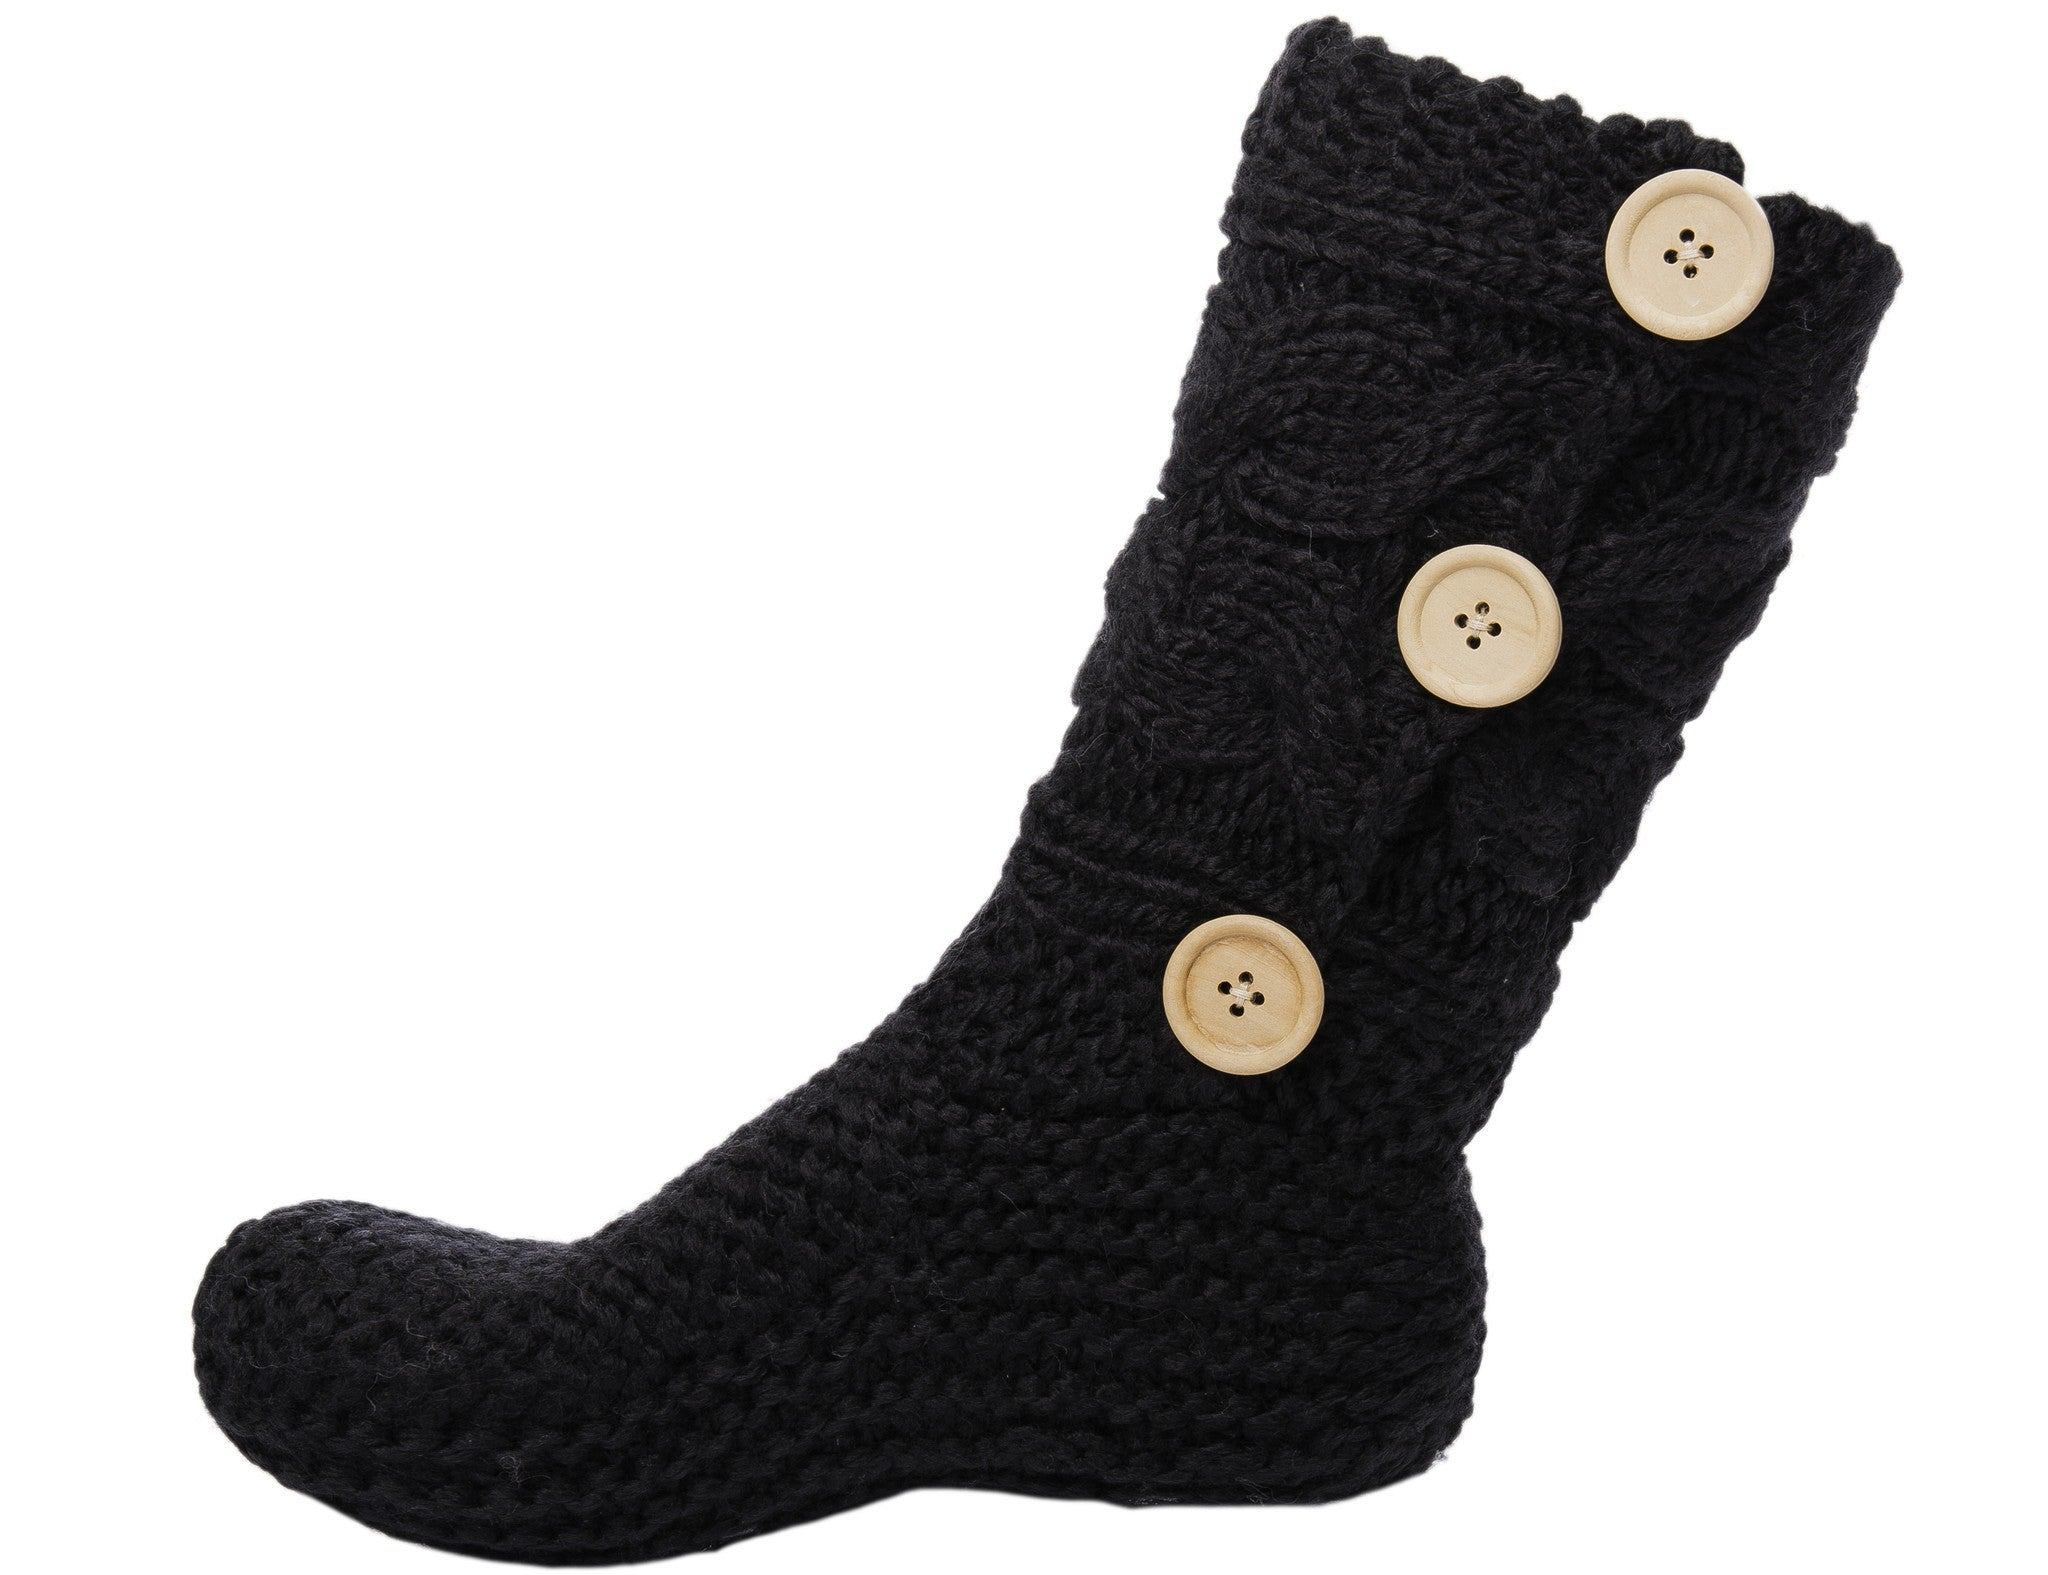 Women's Thick Knit Sweater Slipper Socks with Button Accent